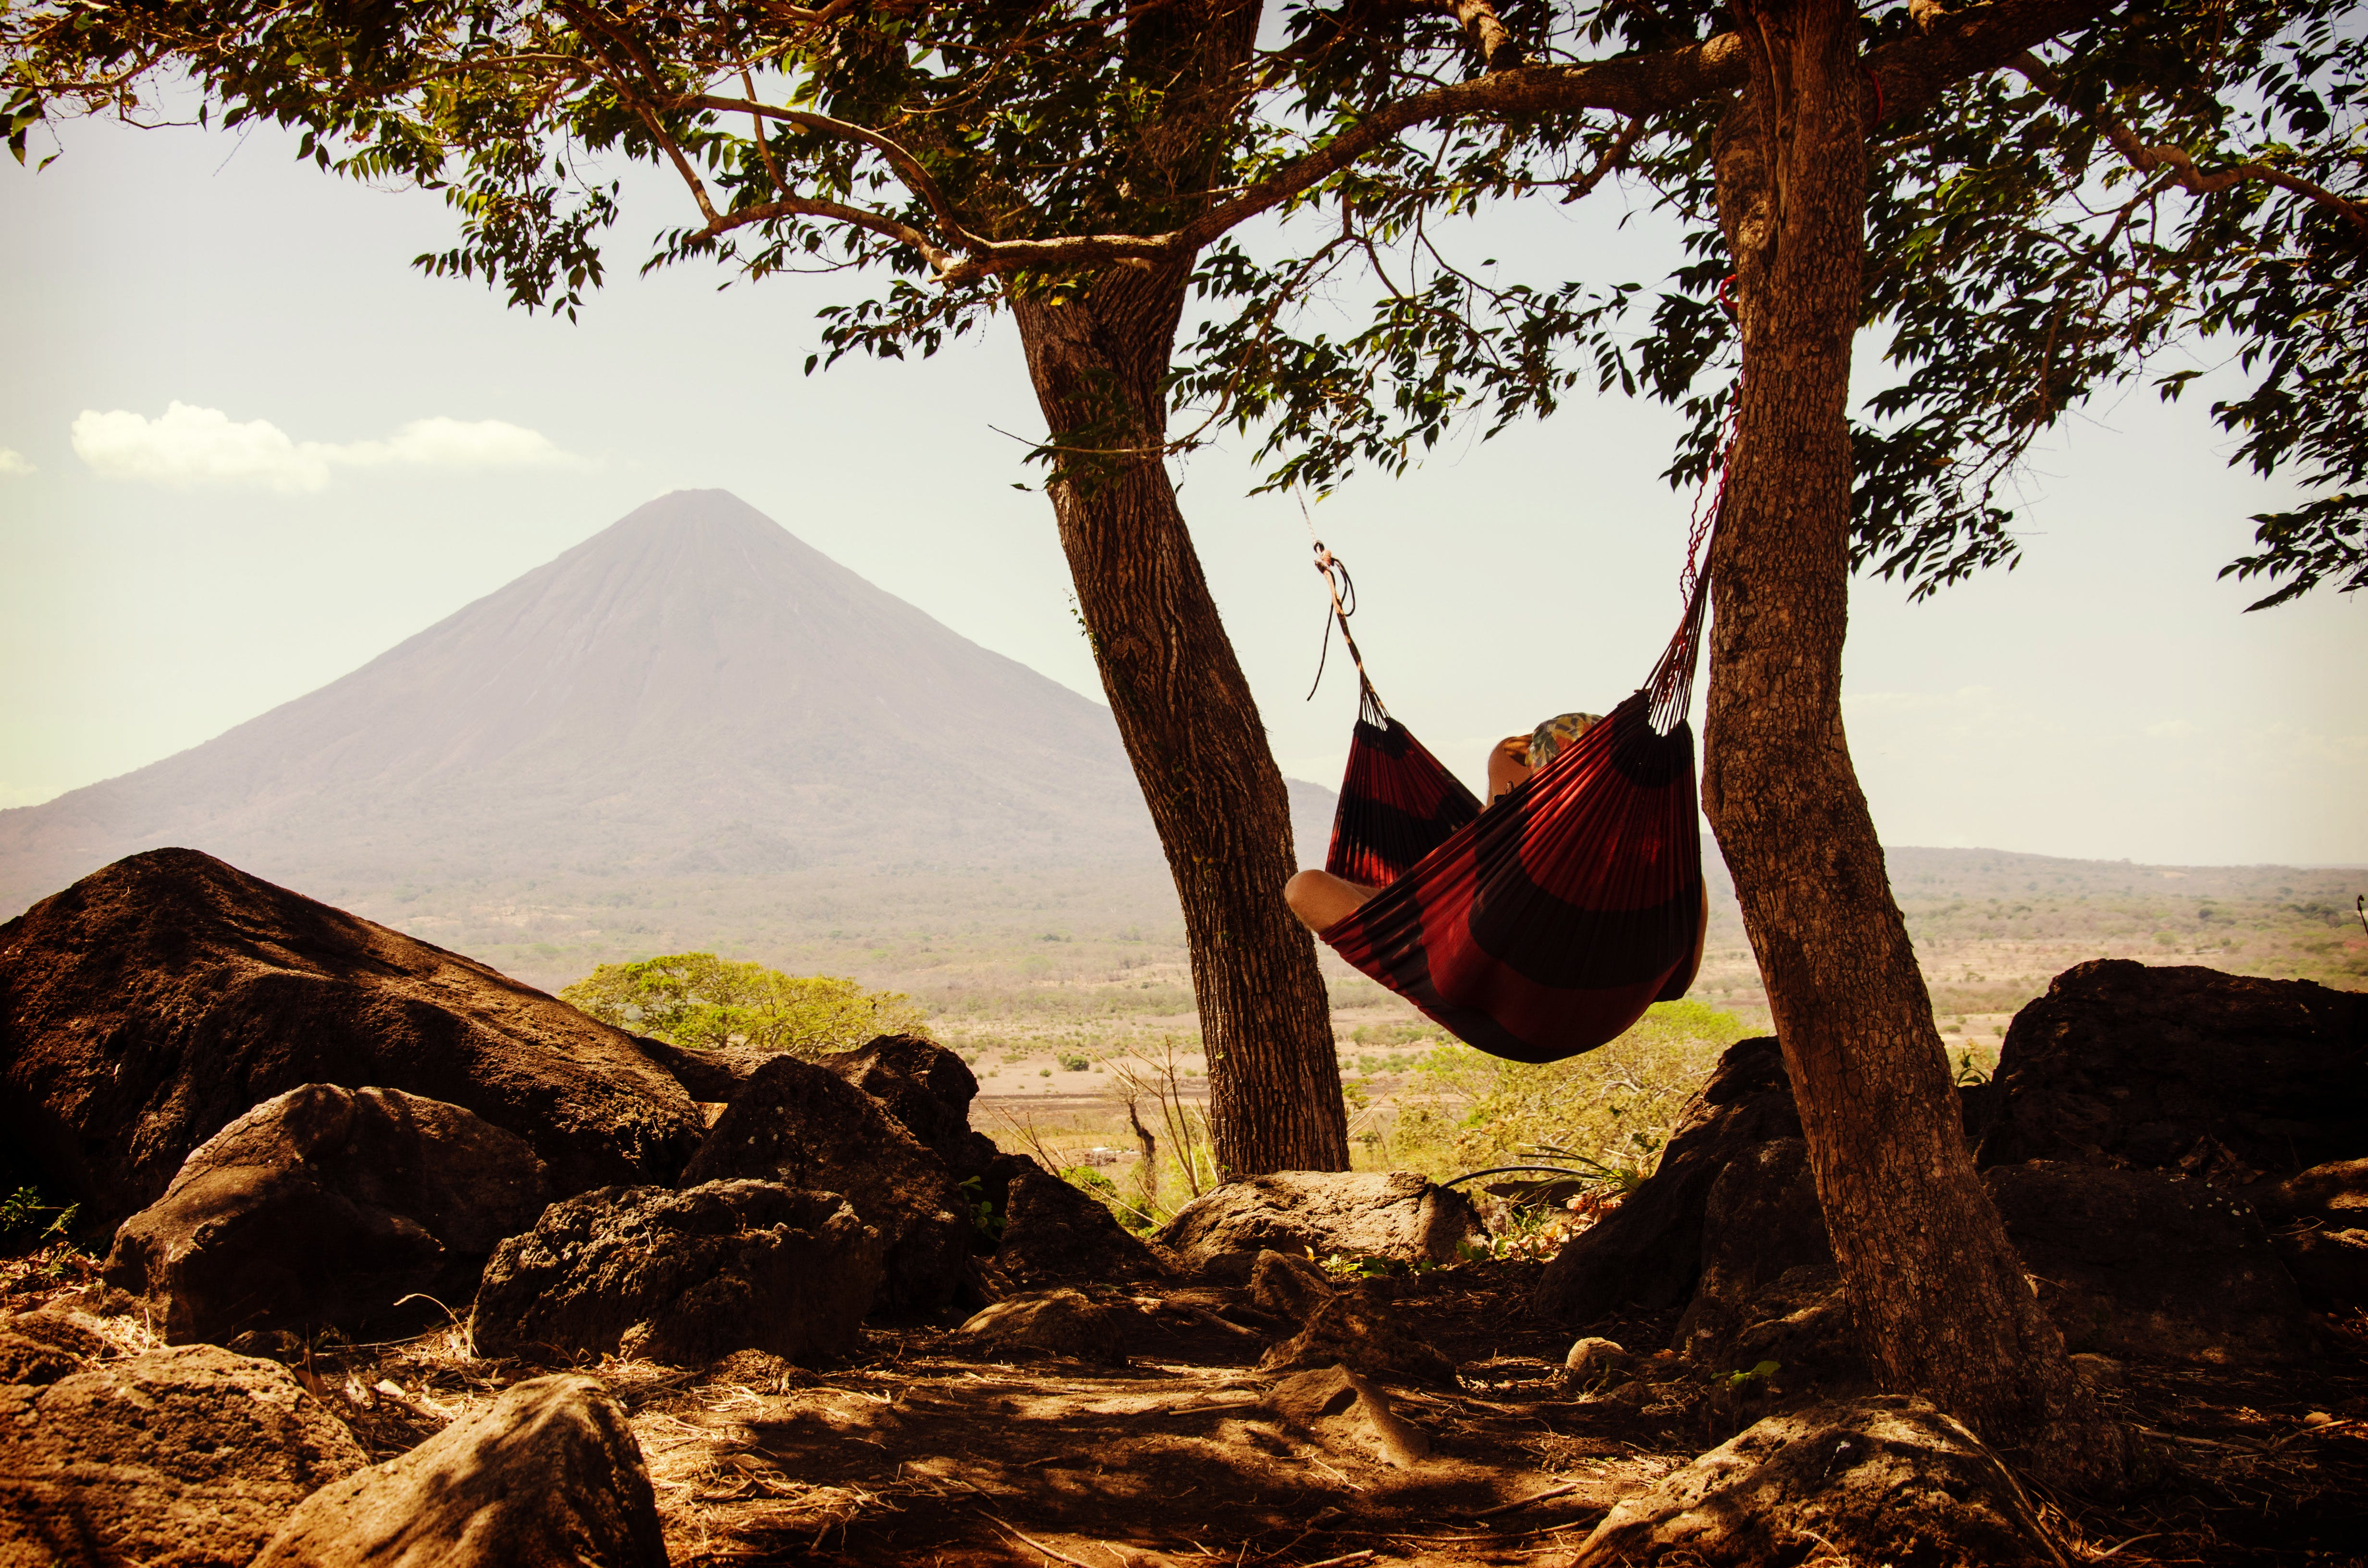 Person Lying on Black and Red Hammock Beside Mountain Under White Cloudy Sky during Daytime